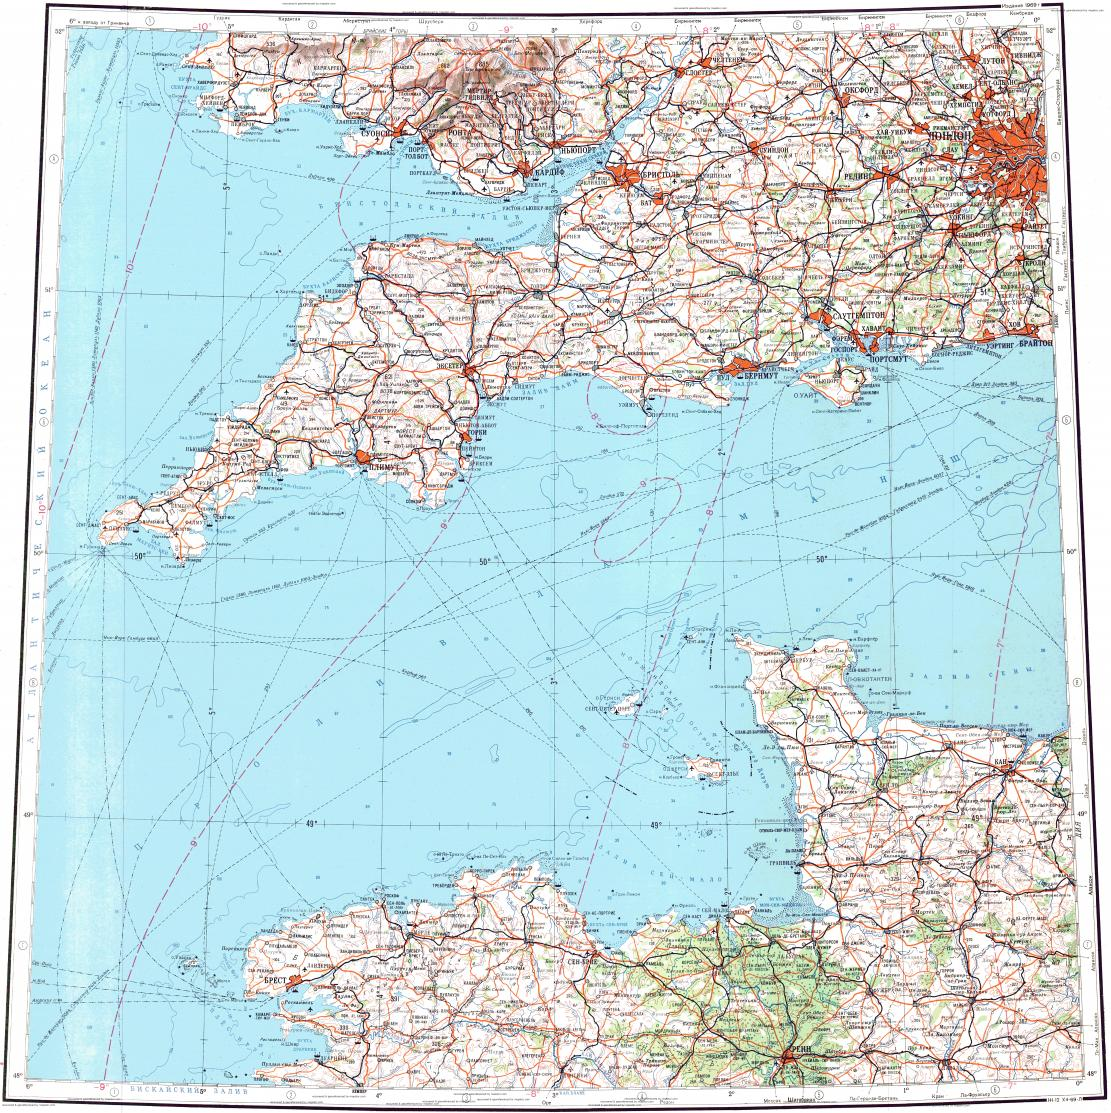 Download topographic map in area of London Cardiff Portsmouth